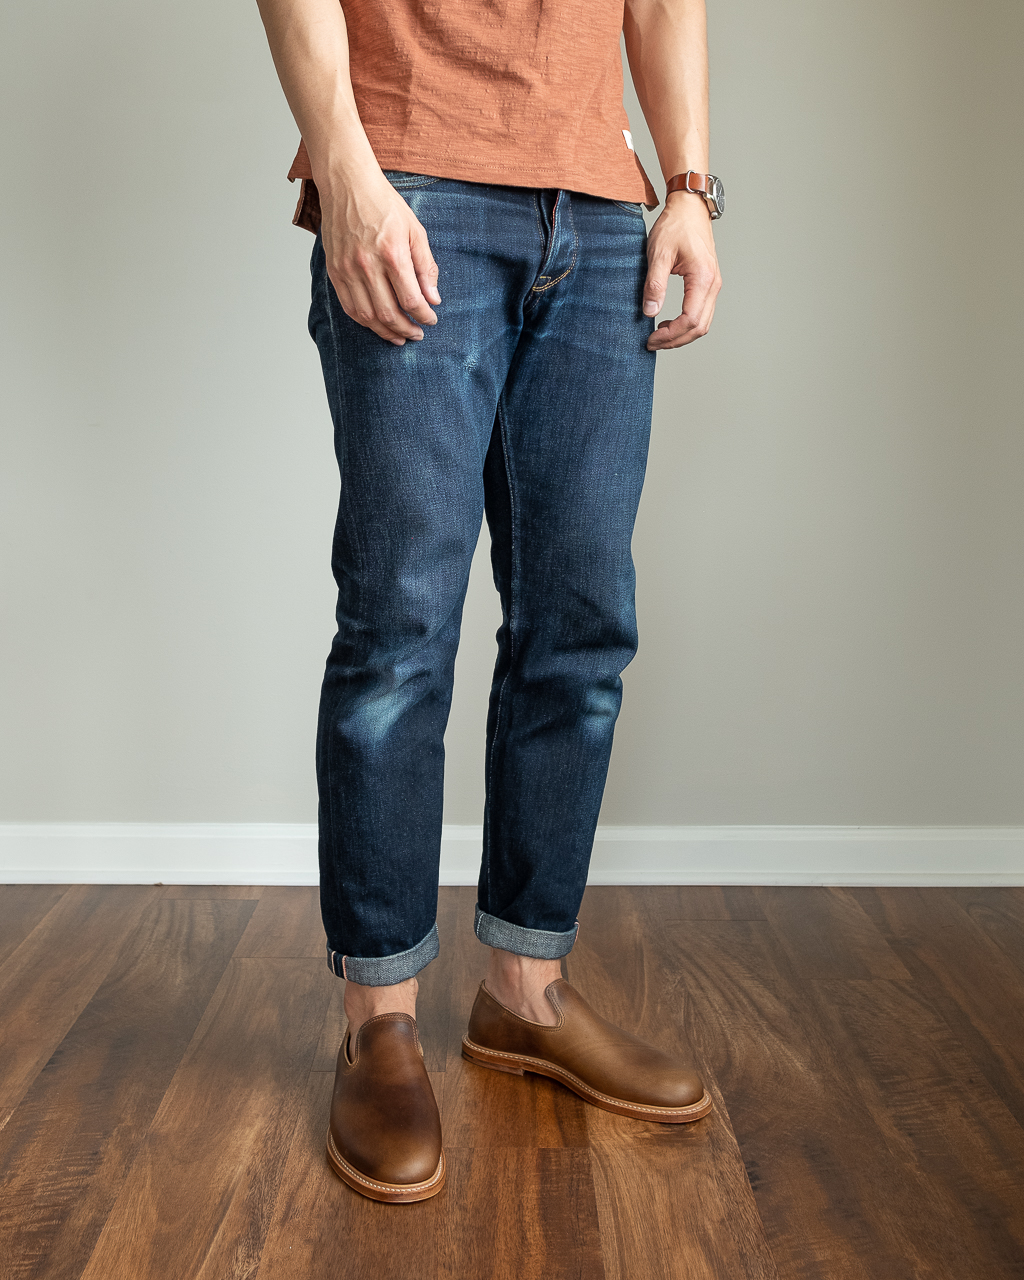 railcar journeyman x034 denim fit